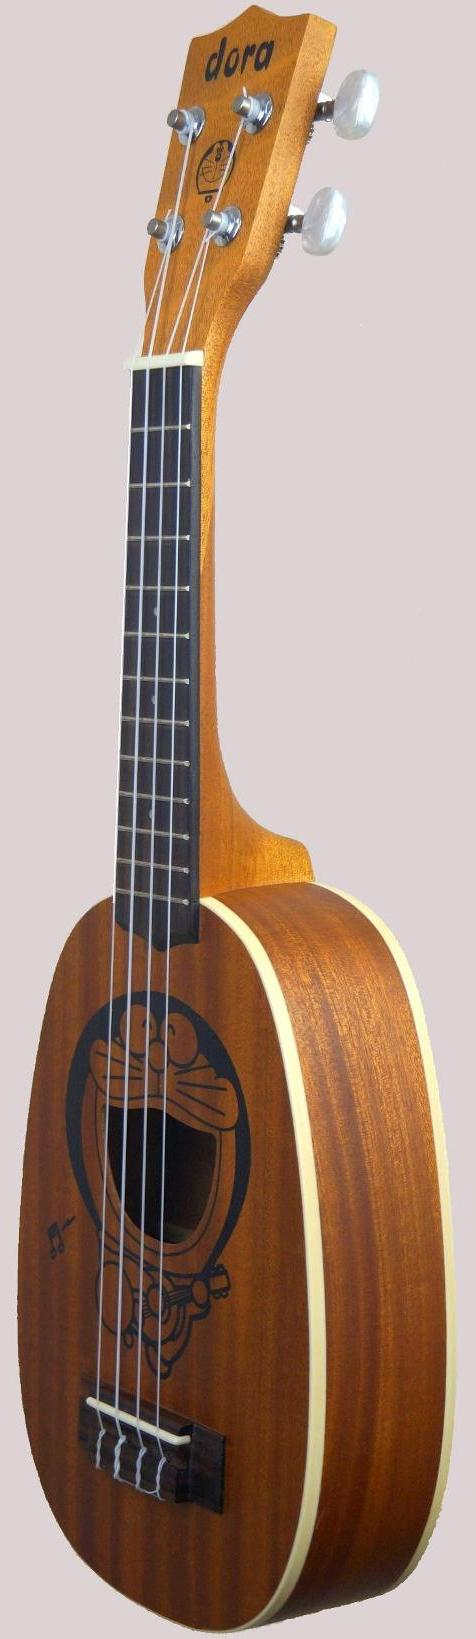 chard pineapple soprano ukulele with laser etching